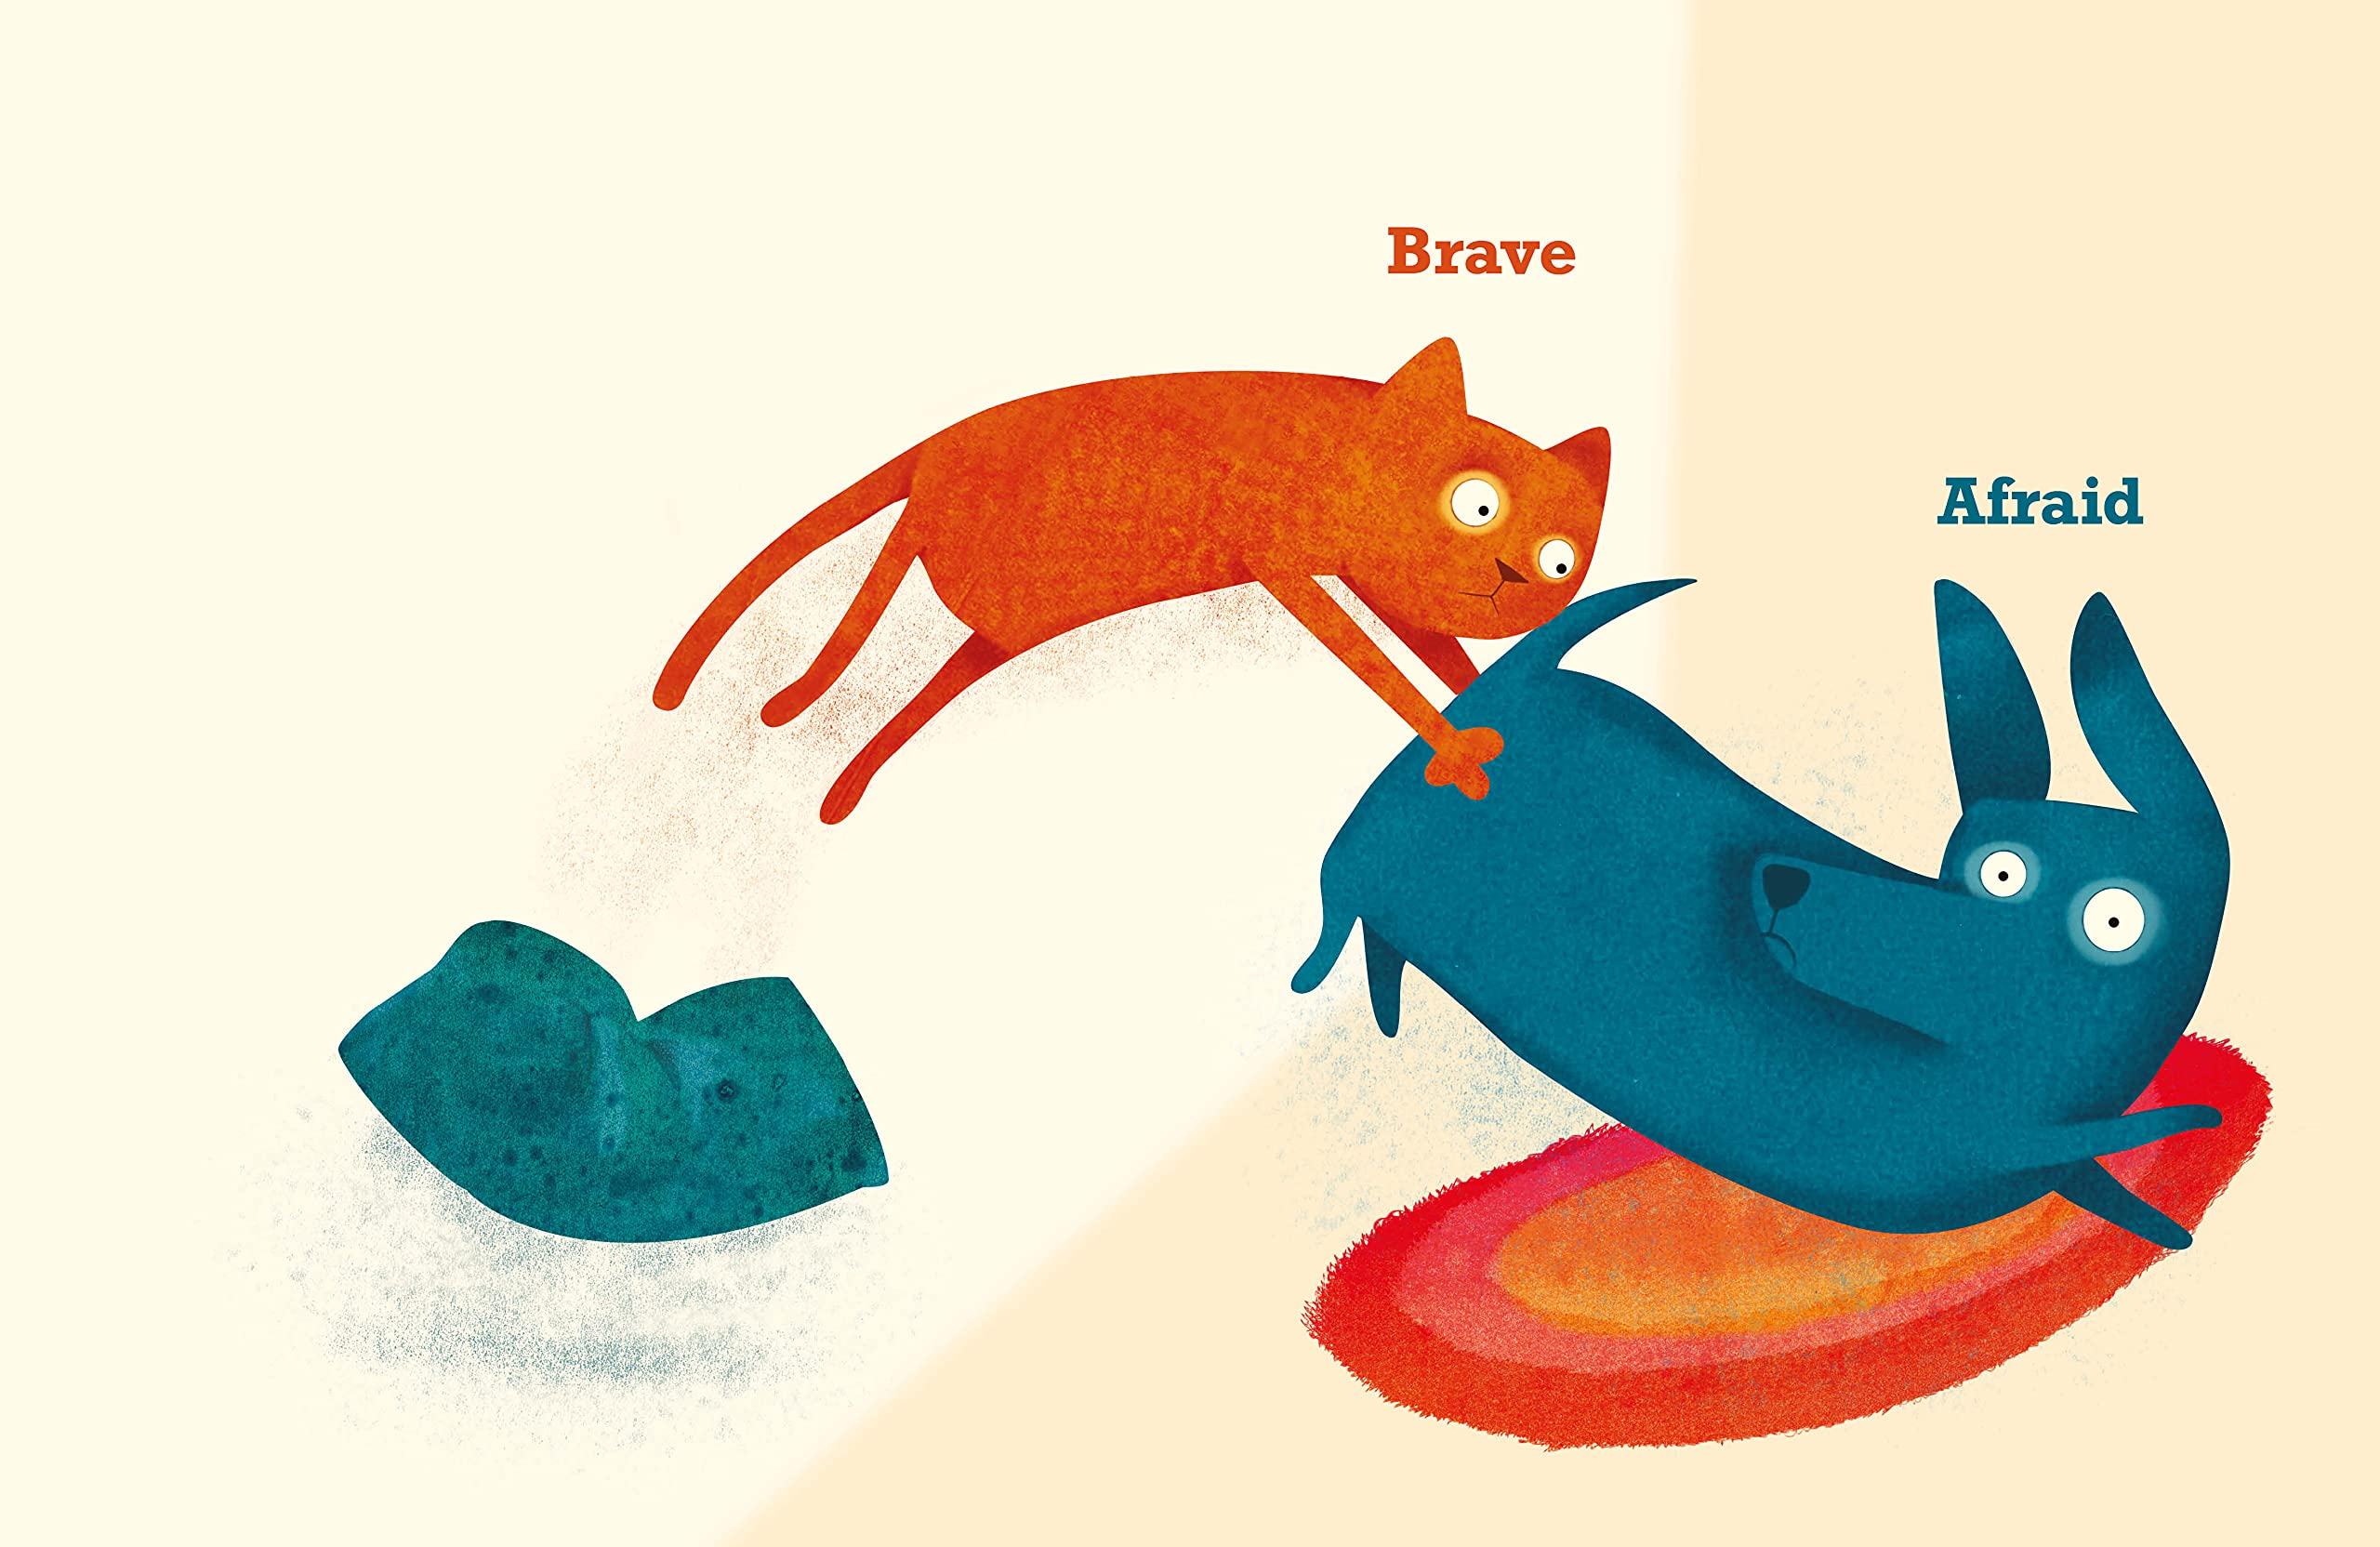 celebrate-picture-books-picture-book-review-cat-and-dog-a-tale-of-opposites-brave